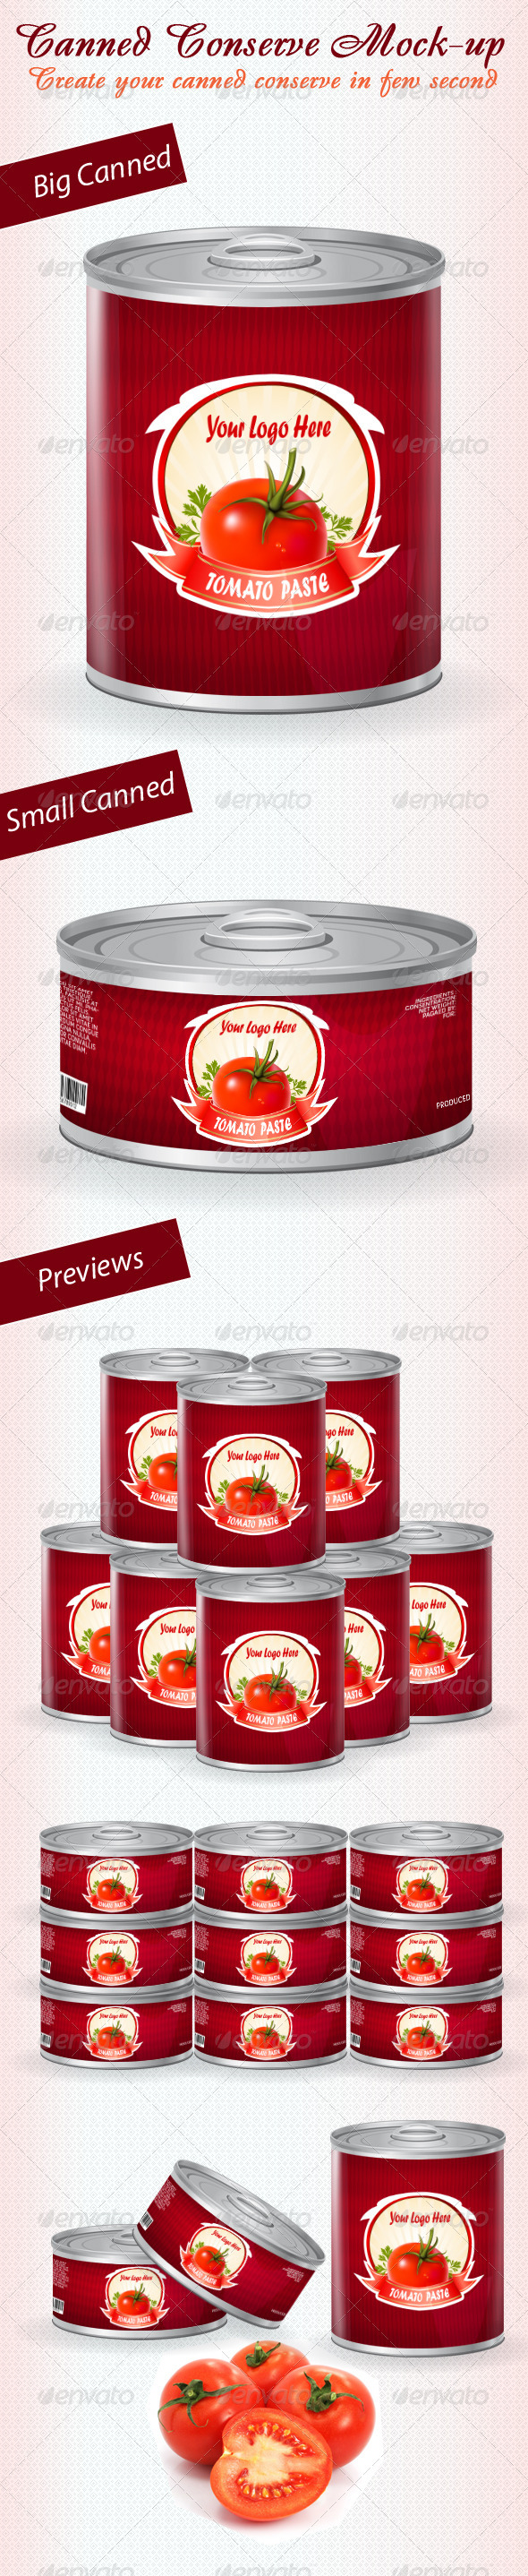 GraphicRiver Canned Conserve Mock-up 460077